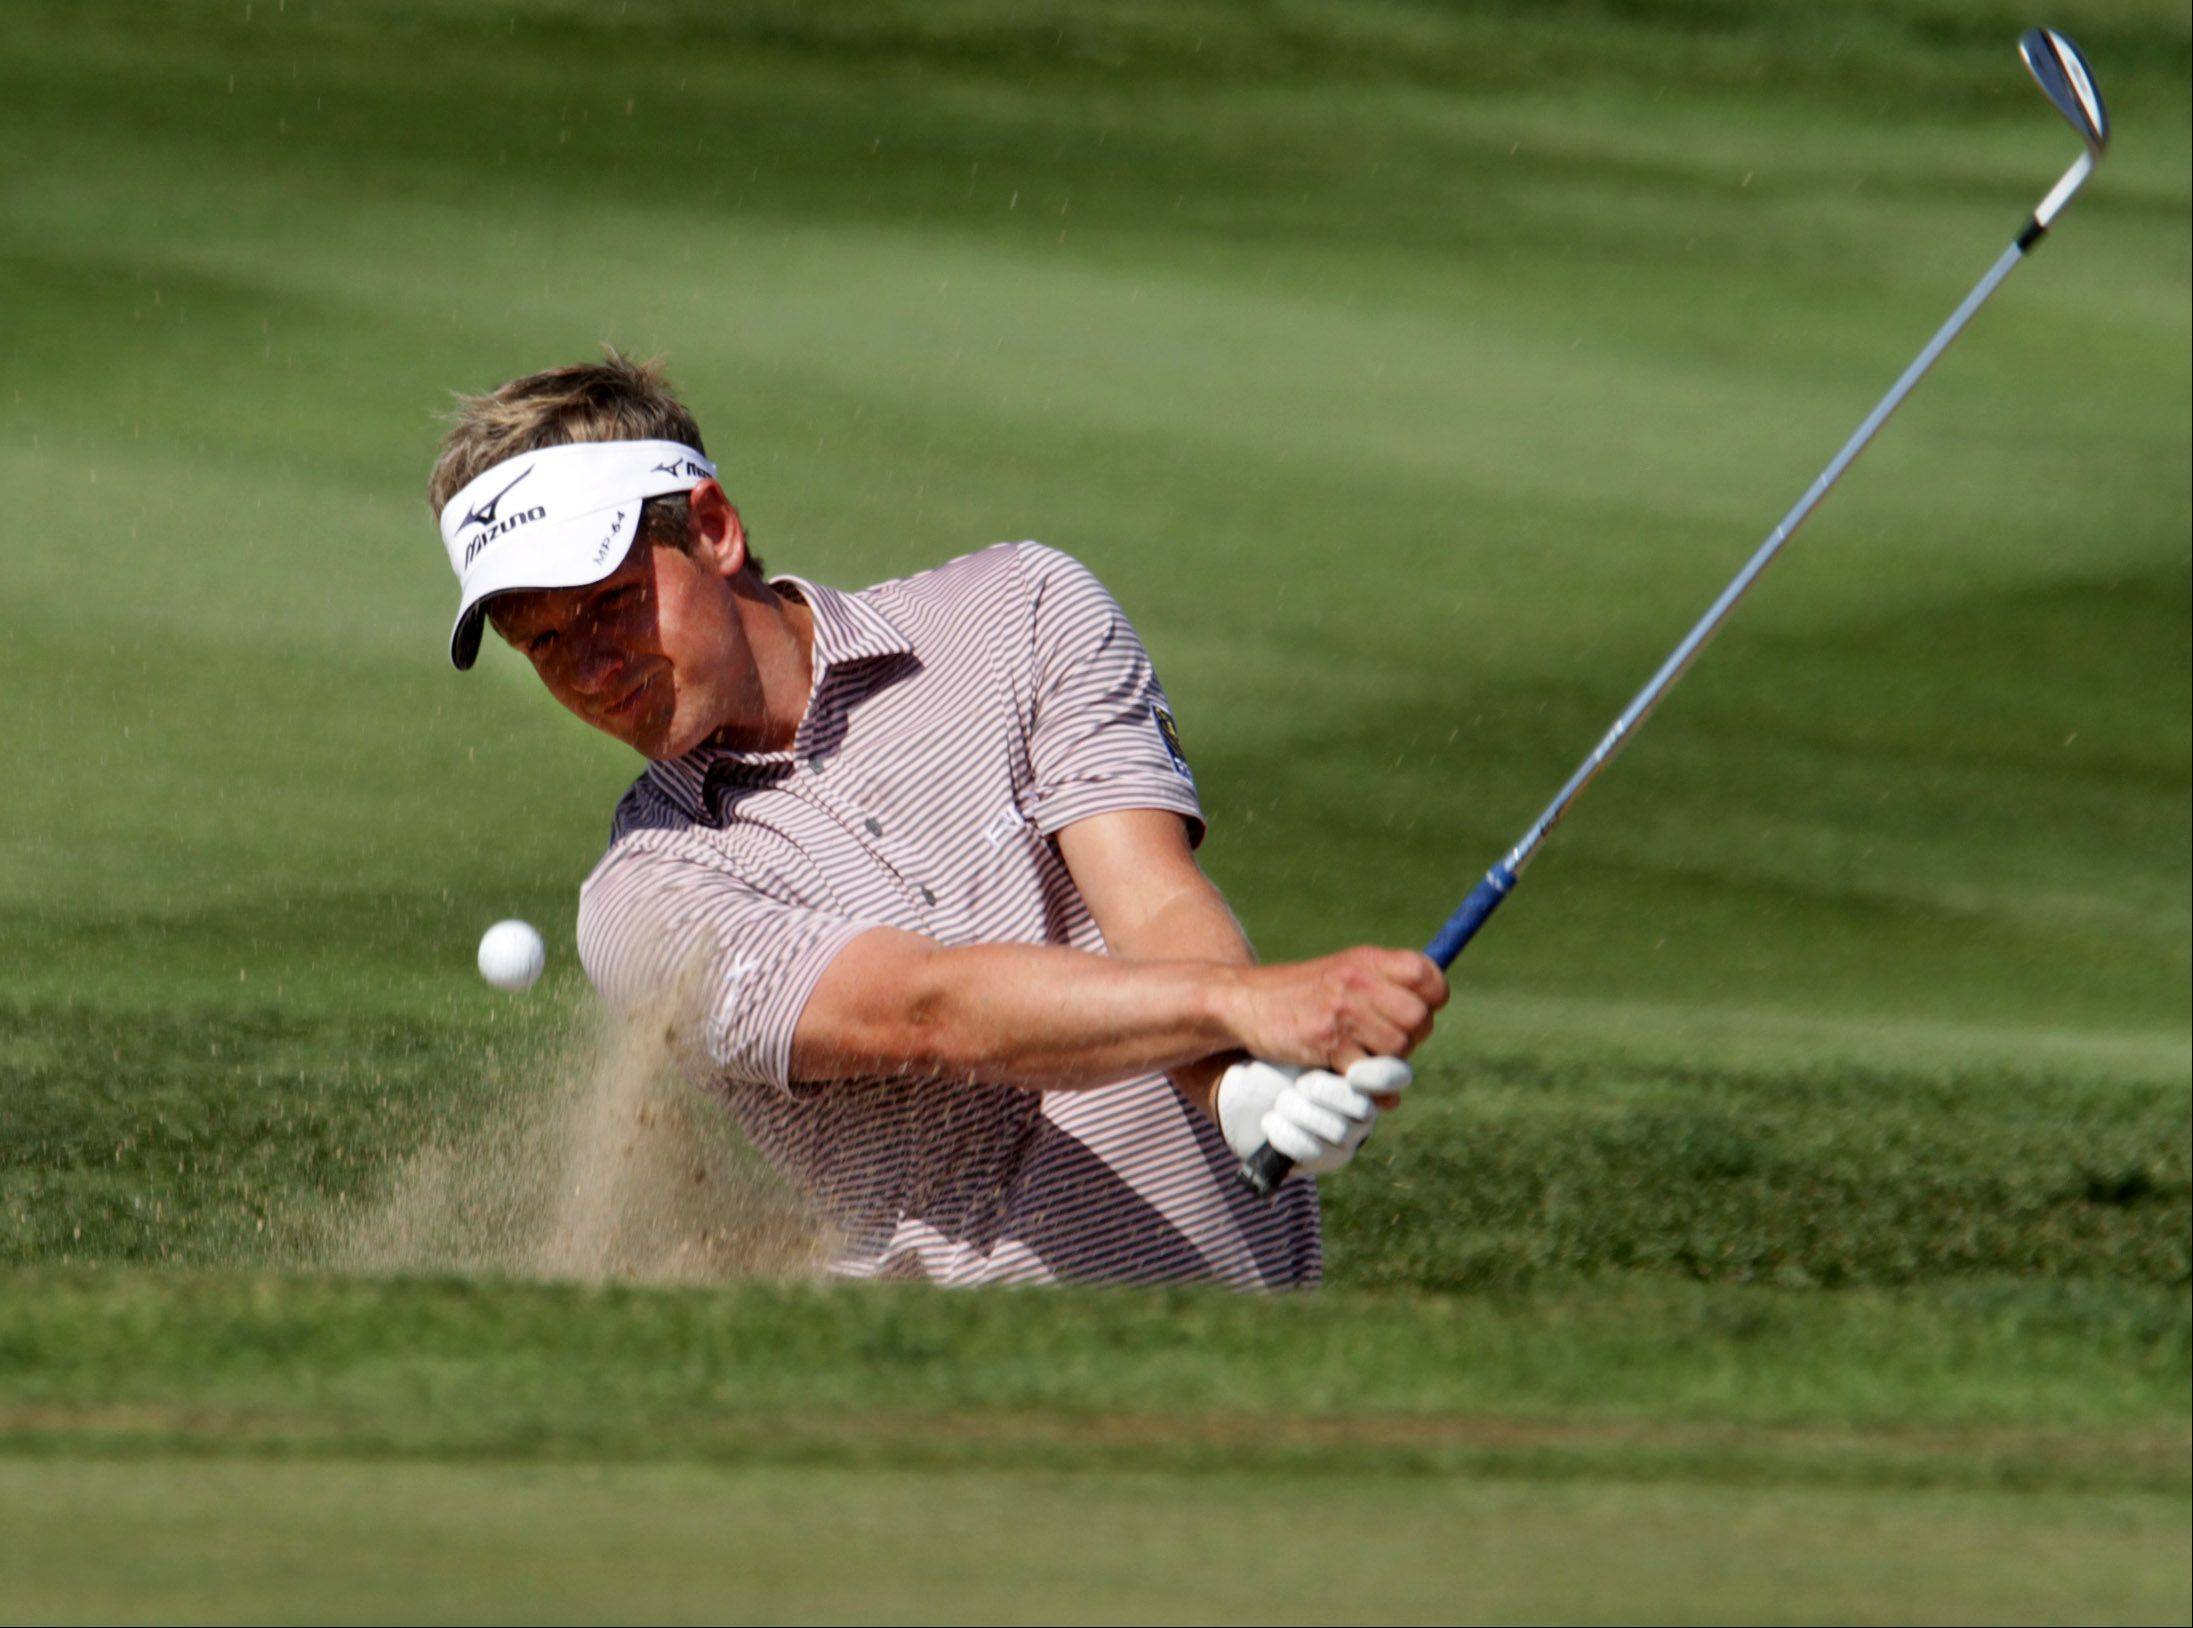 Luke Donald practices swinging from sand on the putting green Tuesday.